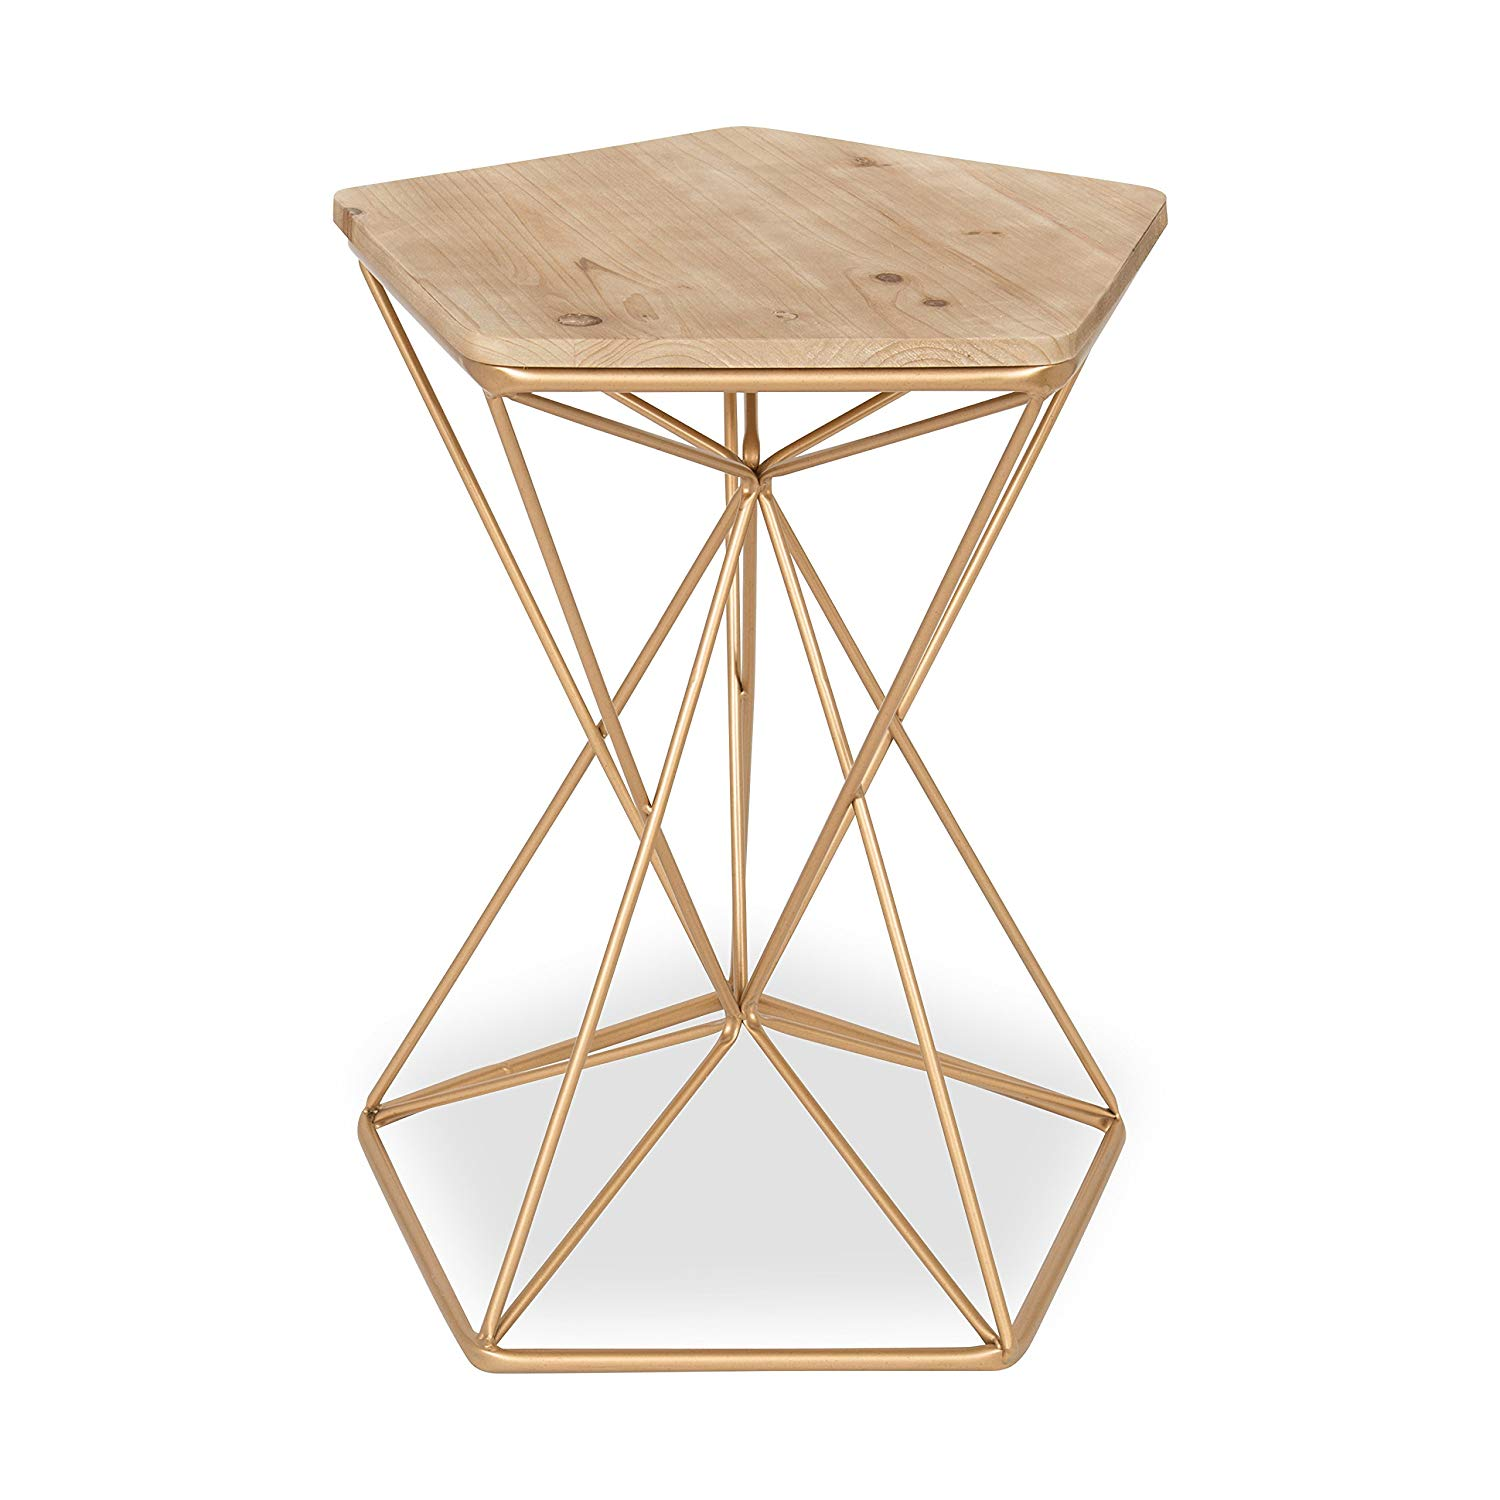 kate and laurel ulane metal side accent table with top natural wood rose gold home kitchen vintage cabinet hardware unique outdoor umbrellas penny lamps foot sofa ikea play